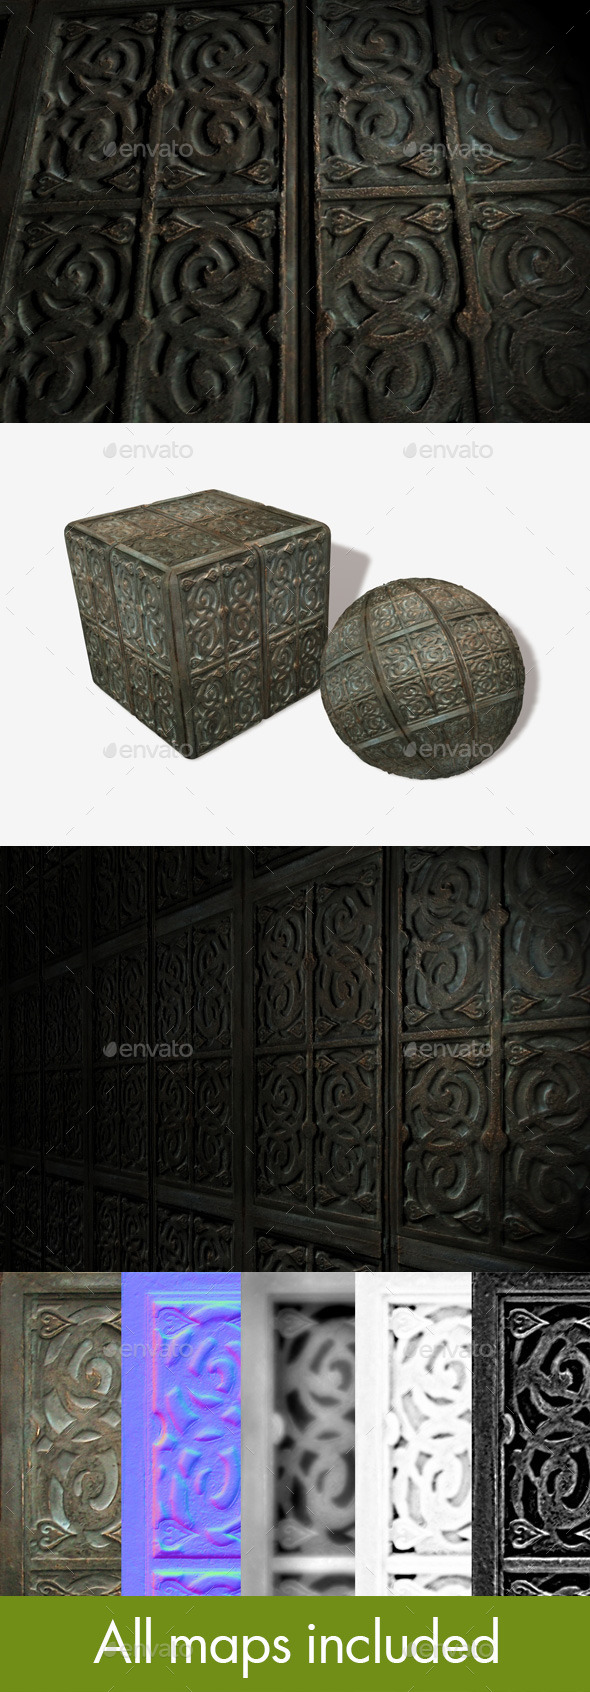 3DOcean Antique Box Seamless Texture 11089403